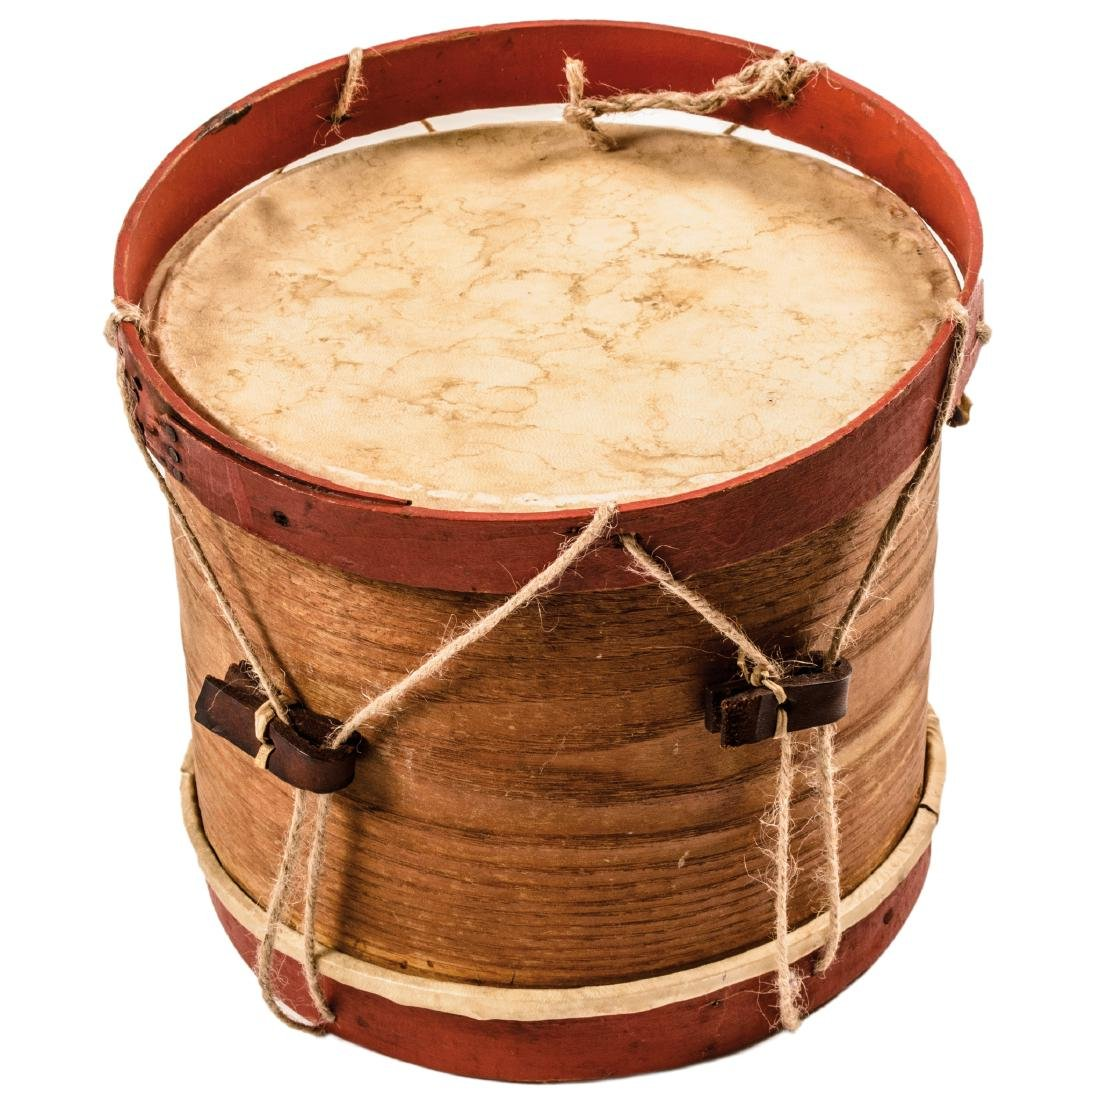 Civil War Era Child's Drum with Wooden Drumsticks - 3